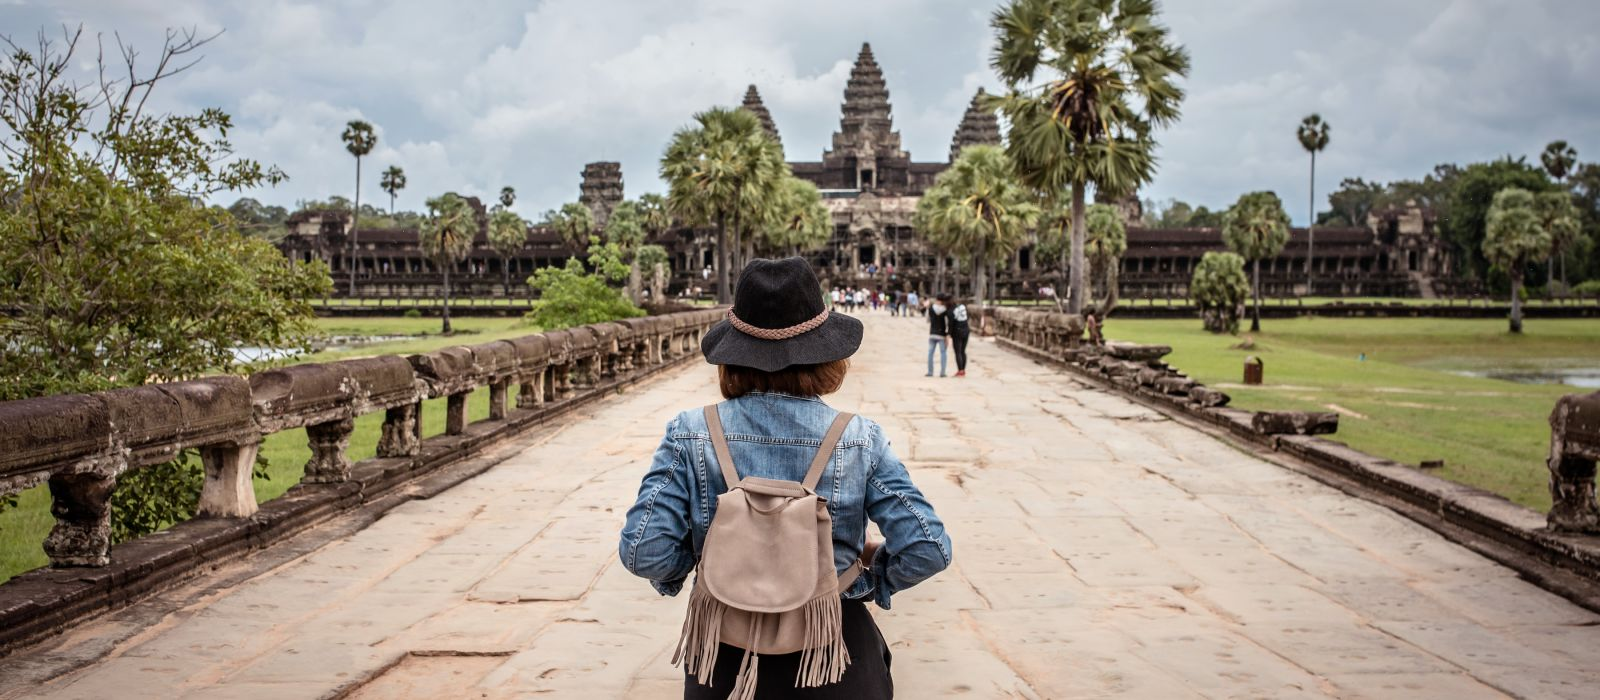 Women tourists wear jacket jeans walking into Angkor Wat landmark in Siem Reap, Cambodia, Asia